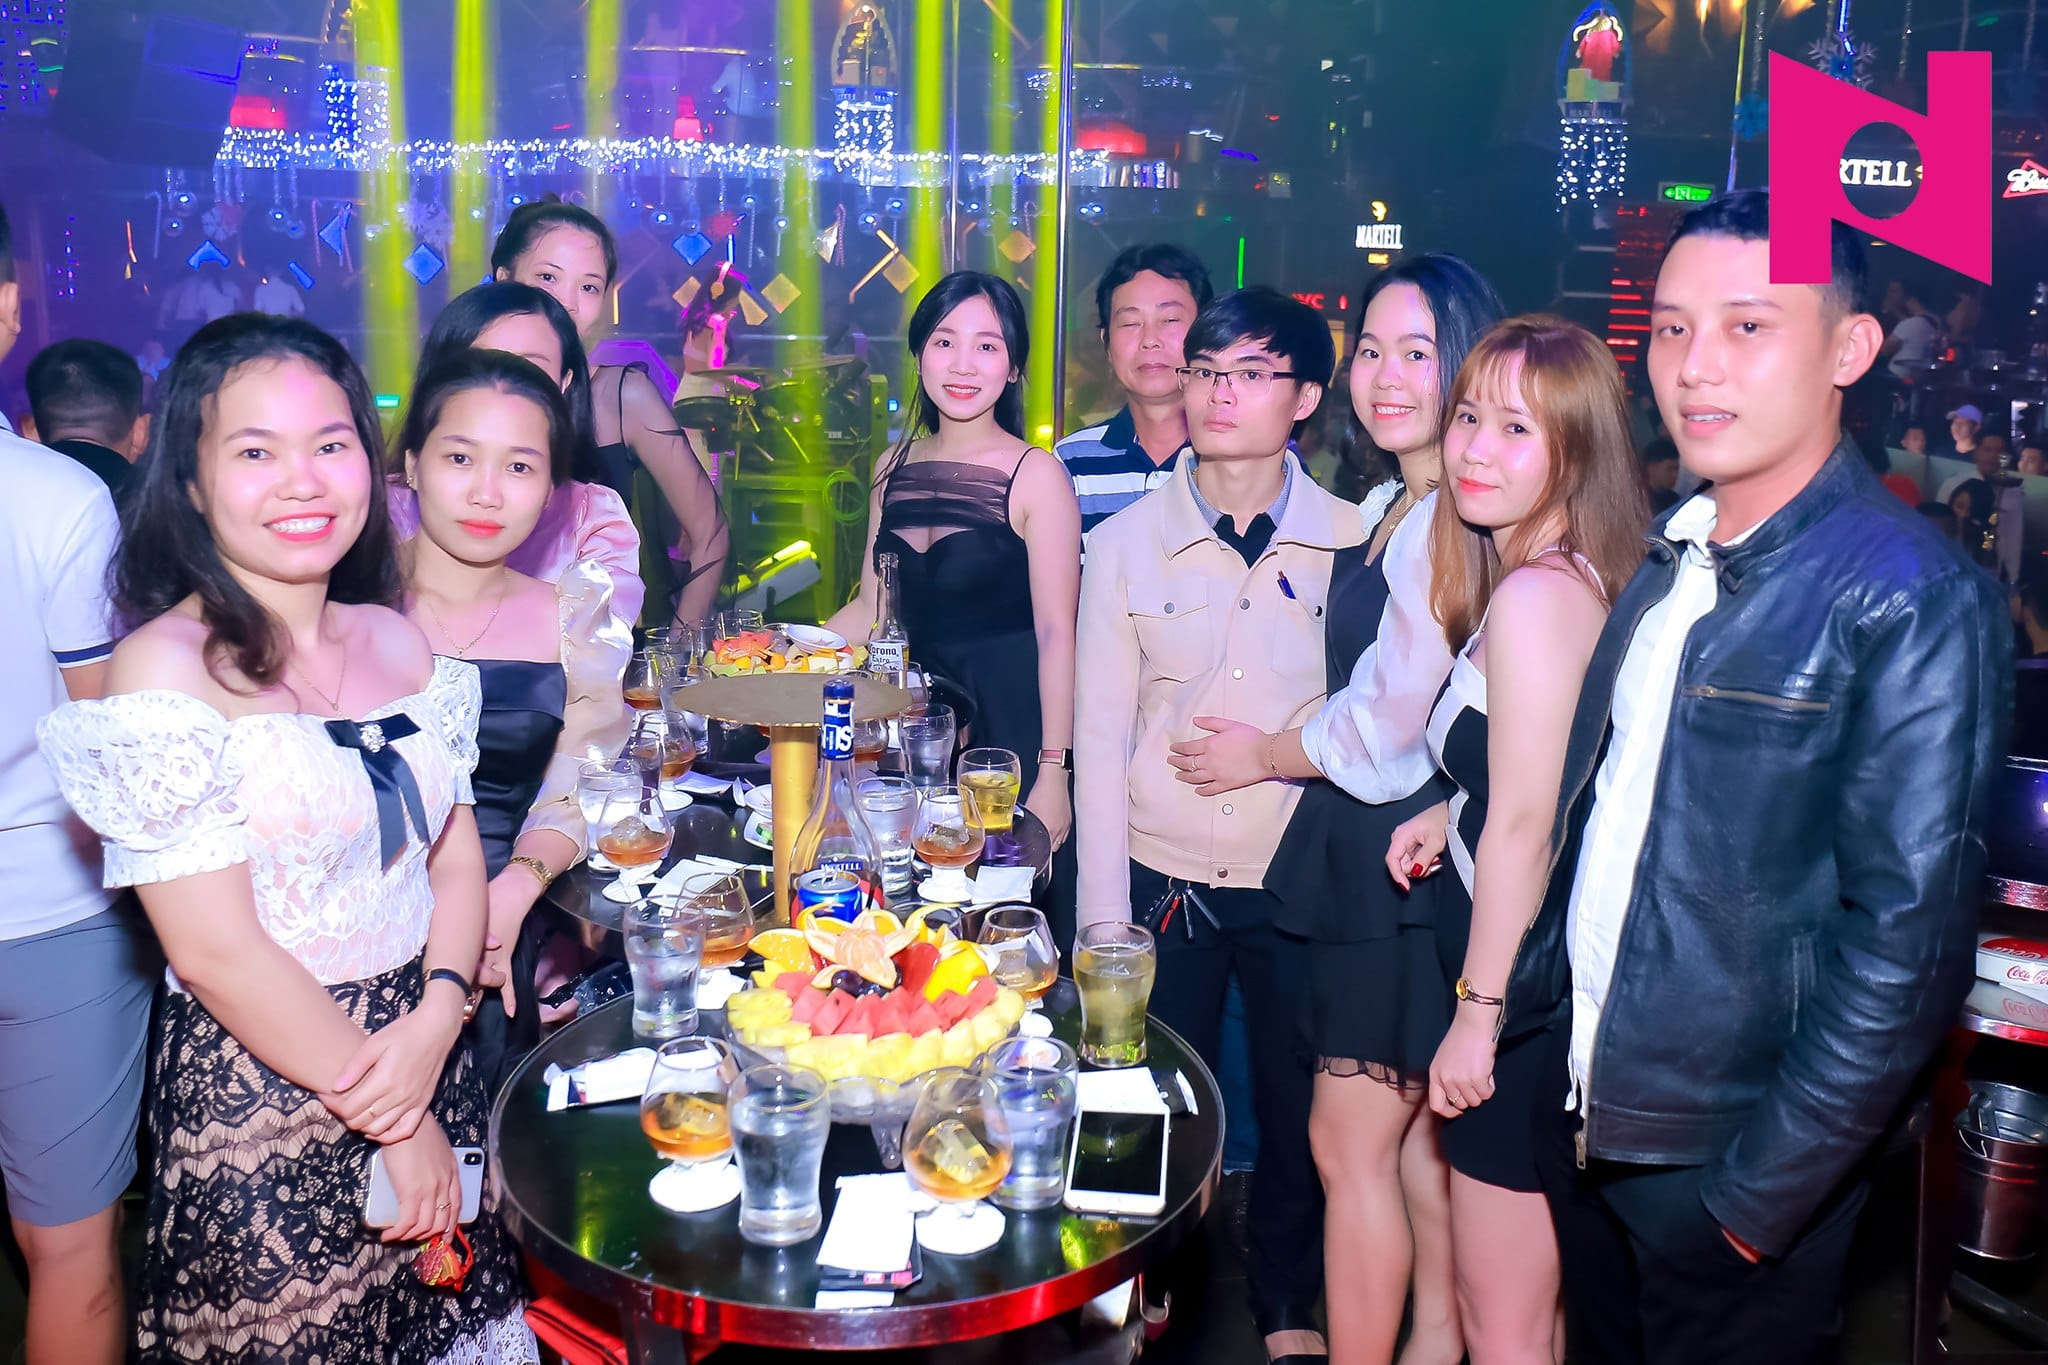 Table service at Phuong Dong Nightclub